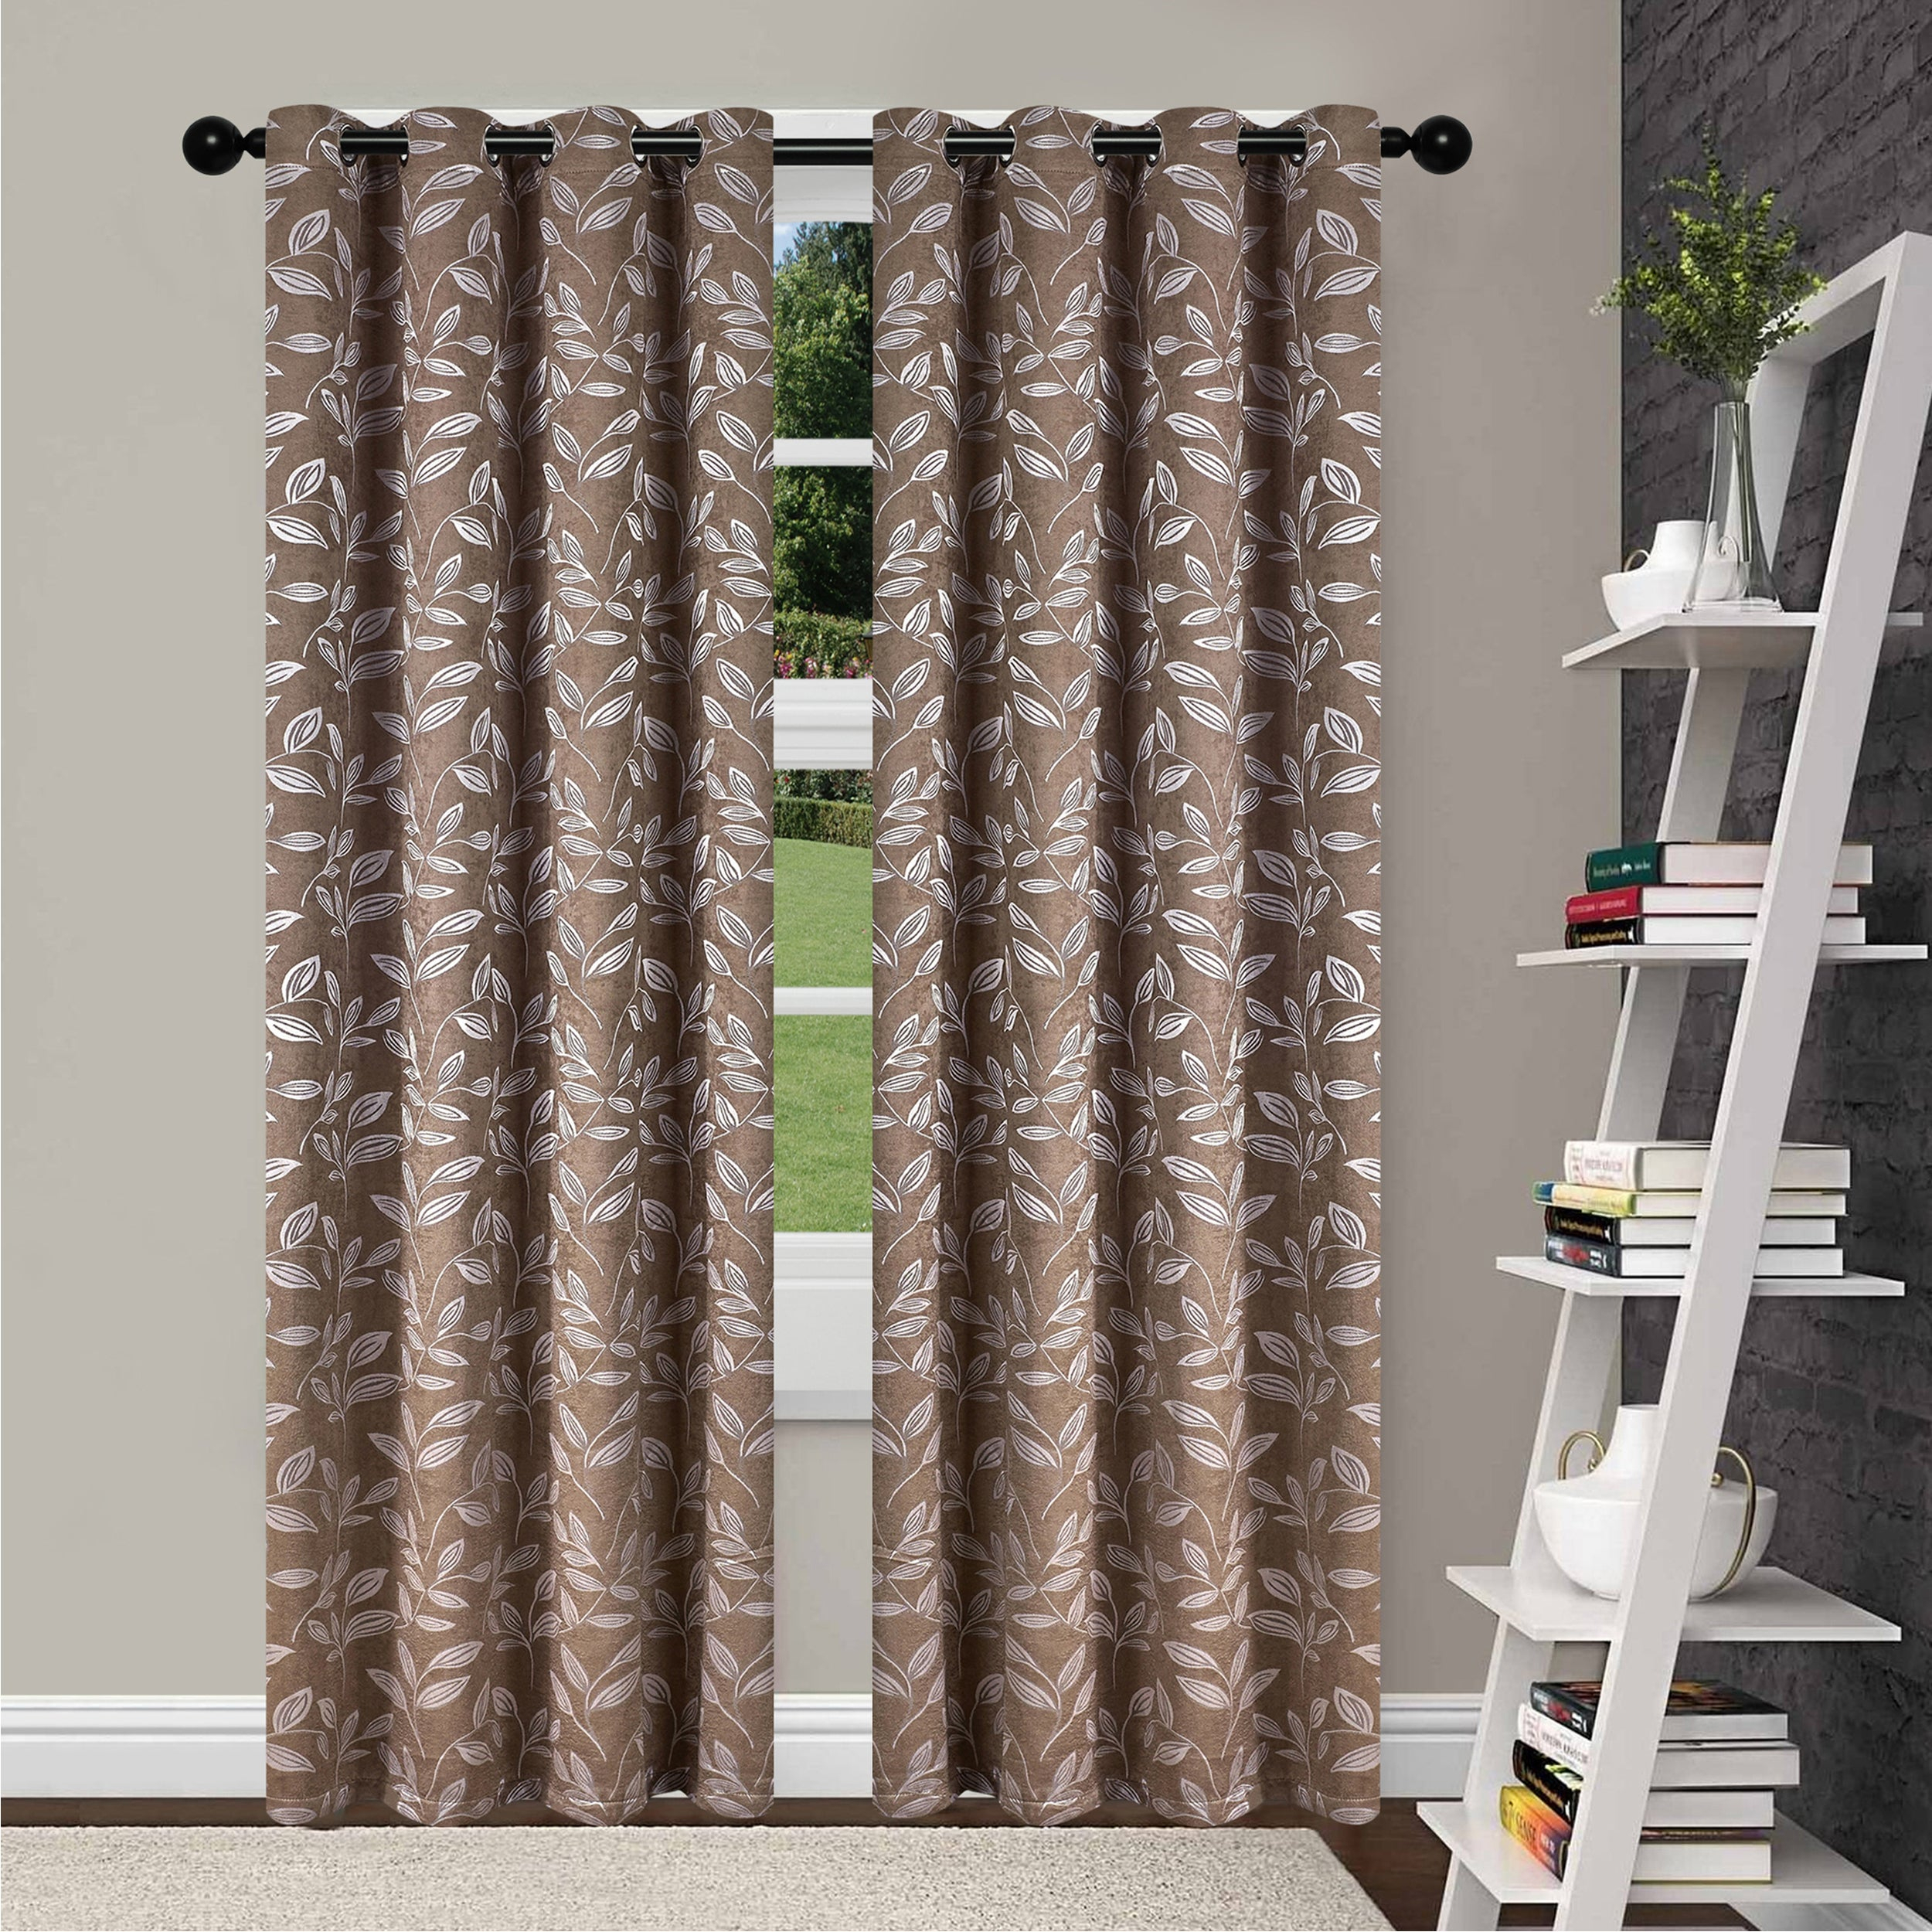 Superior Leaves Insulated Thermal Blackout Grommet Curtain Panel Pair In London Blackout Panel Pair (View 17 of 20)